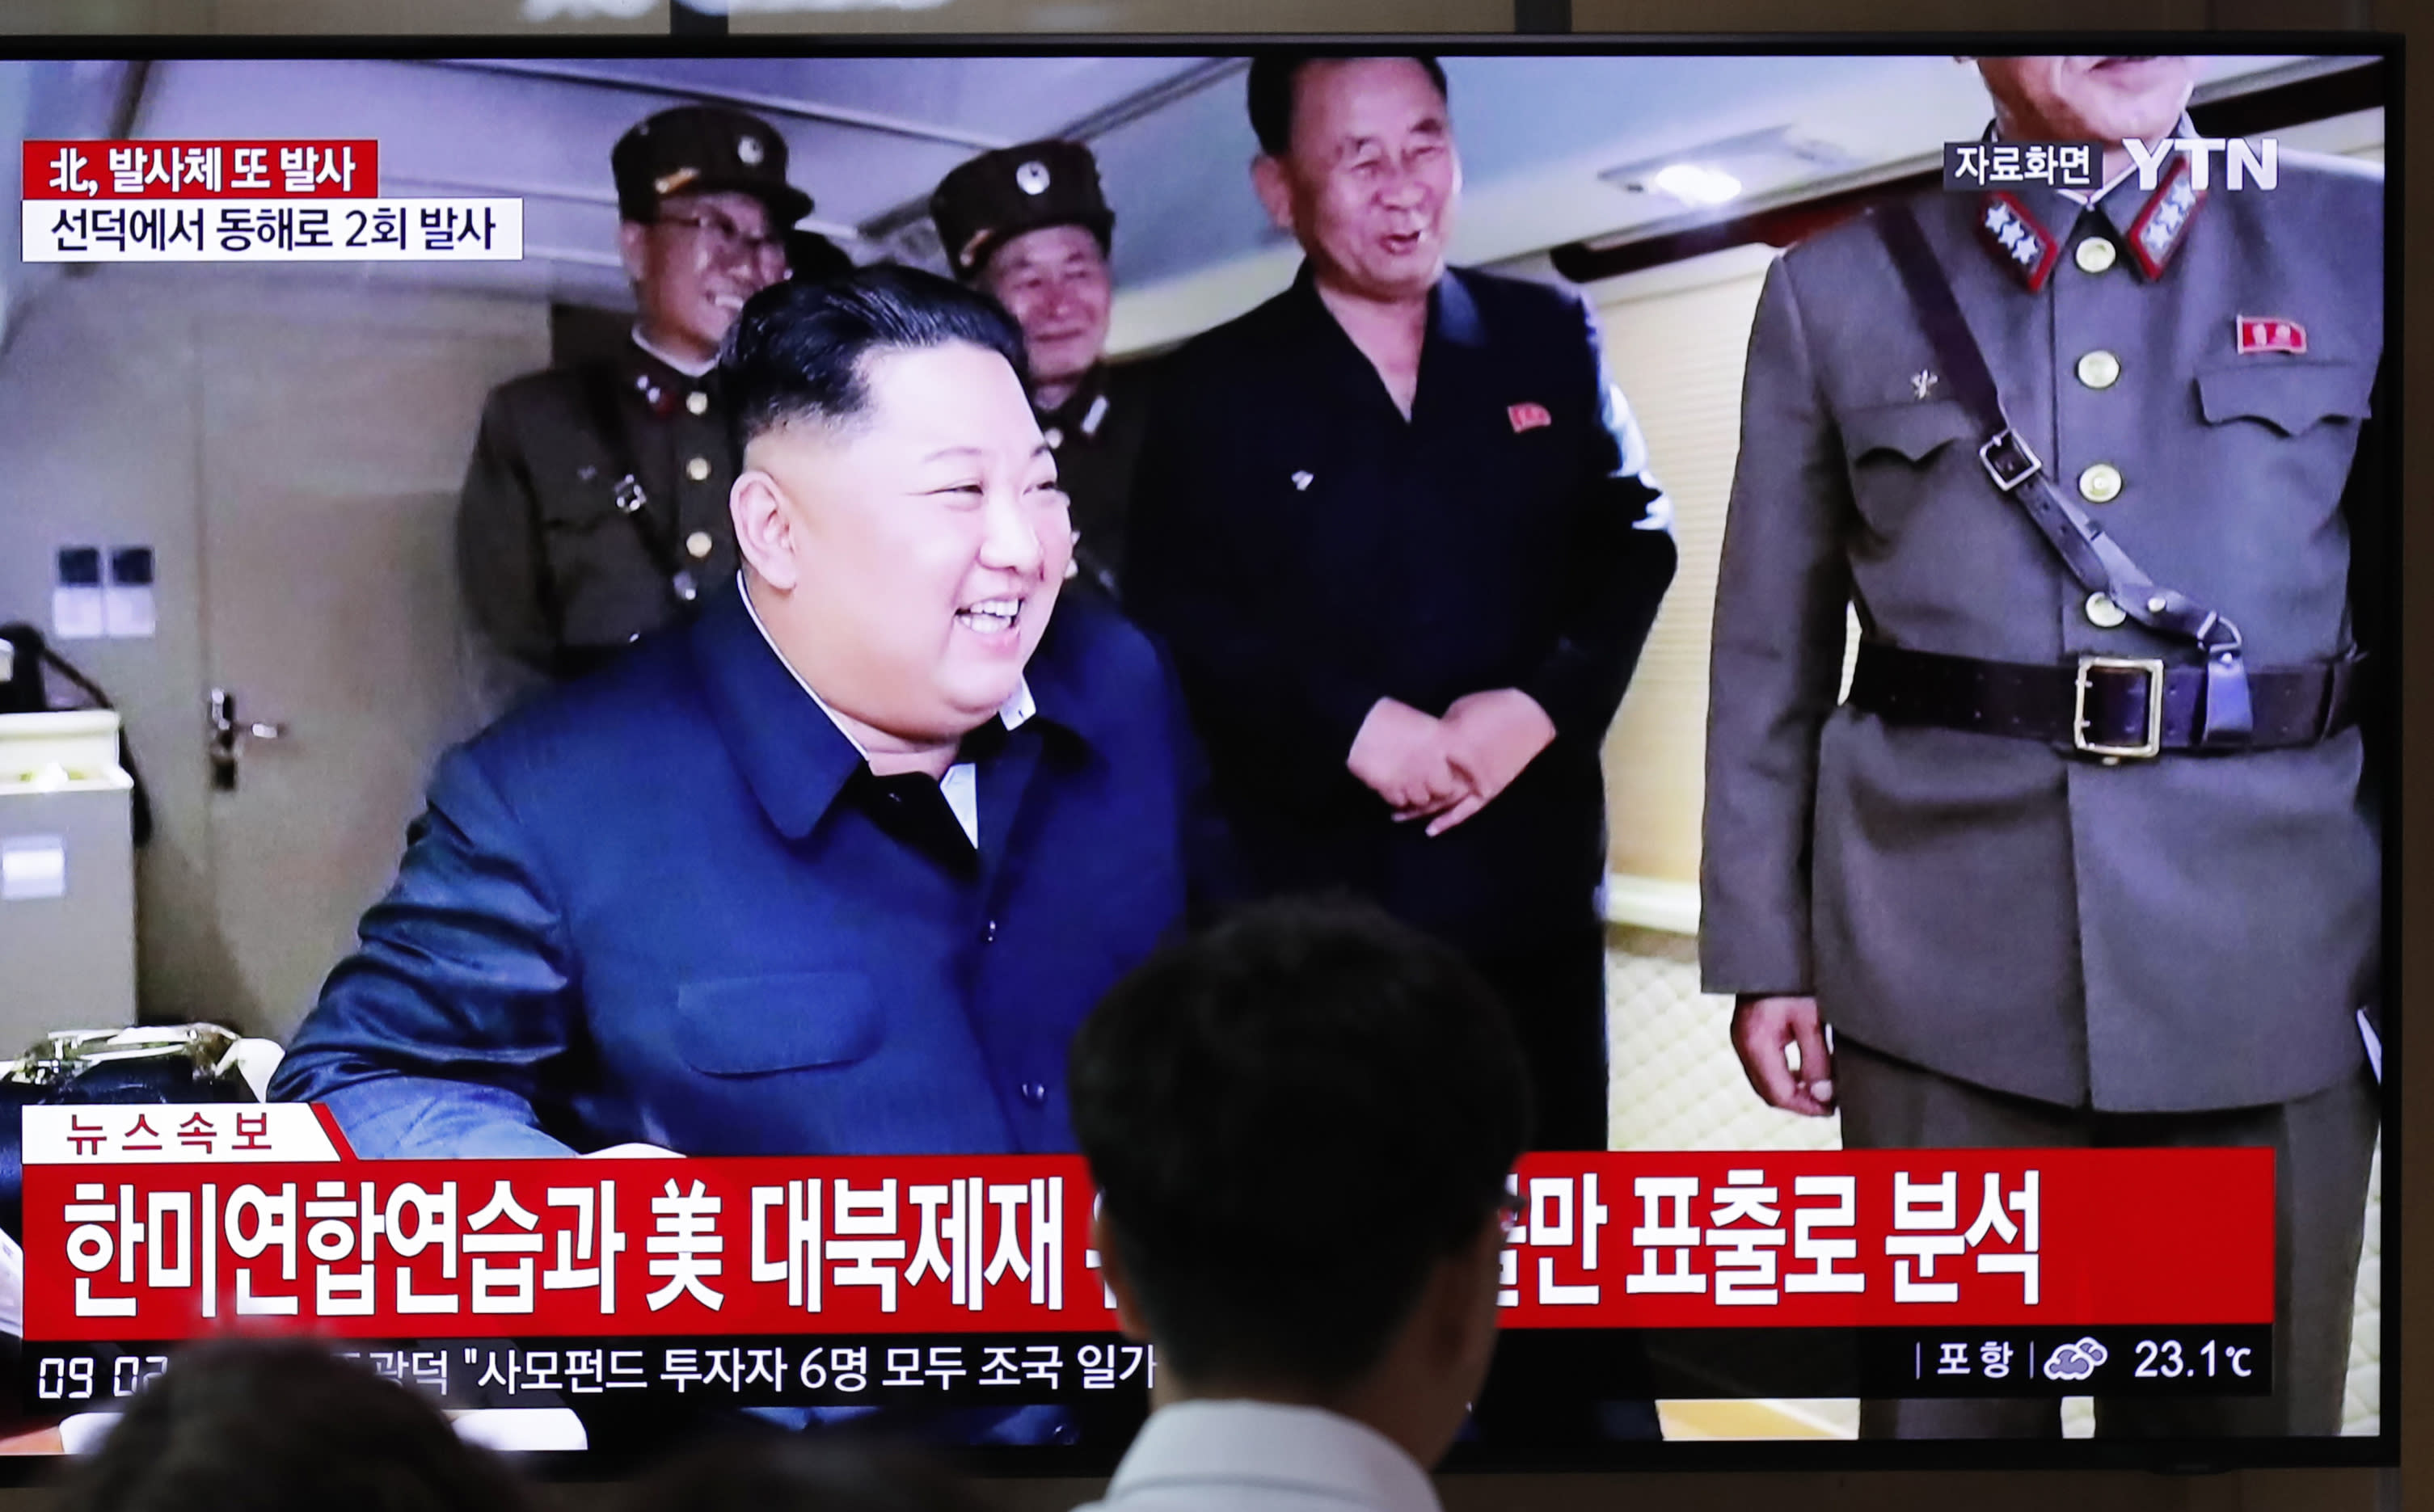 """People watch a TV news program reporting North Korea's firing of projectiles with a file image of North Korean leader Kim Jong Un at the Seoul Railway Station in Seoul, South Korea, Saturday, Aug. 24, 2019. North Korea fired two suspected short-range ballistic missiles off its east coast on Saturday in the seventh consecutive week of weapons tests, South Korea's military said, a day after it threatened to remain America's biggest threat in protest of U.S.-led sanctions on the country. The Korean letters read: """"North Korea fired projectiles."""" (AP Photo/Lee Jin-man)"""